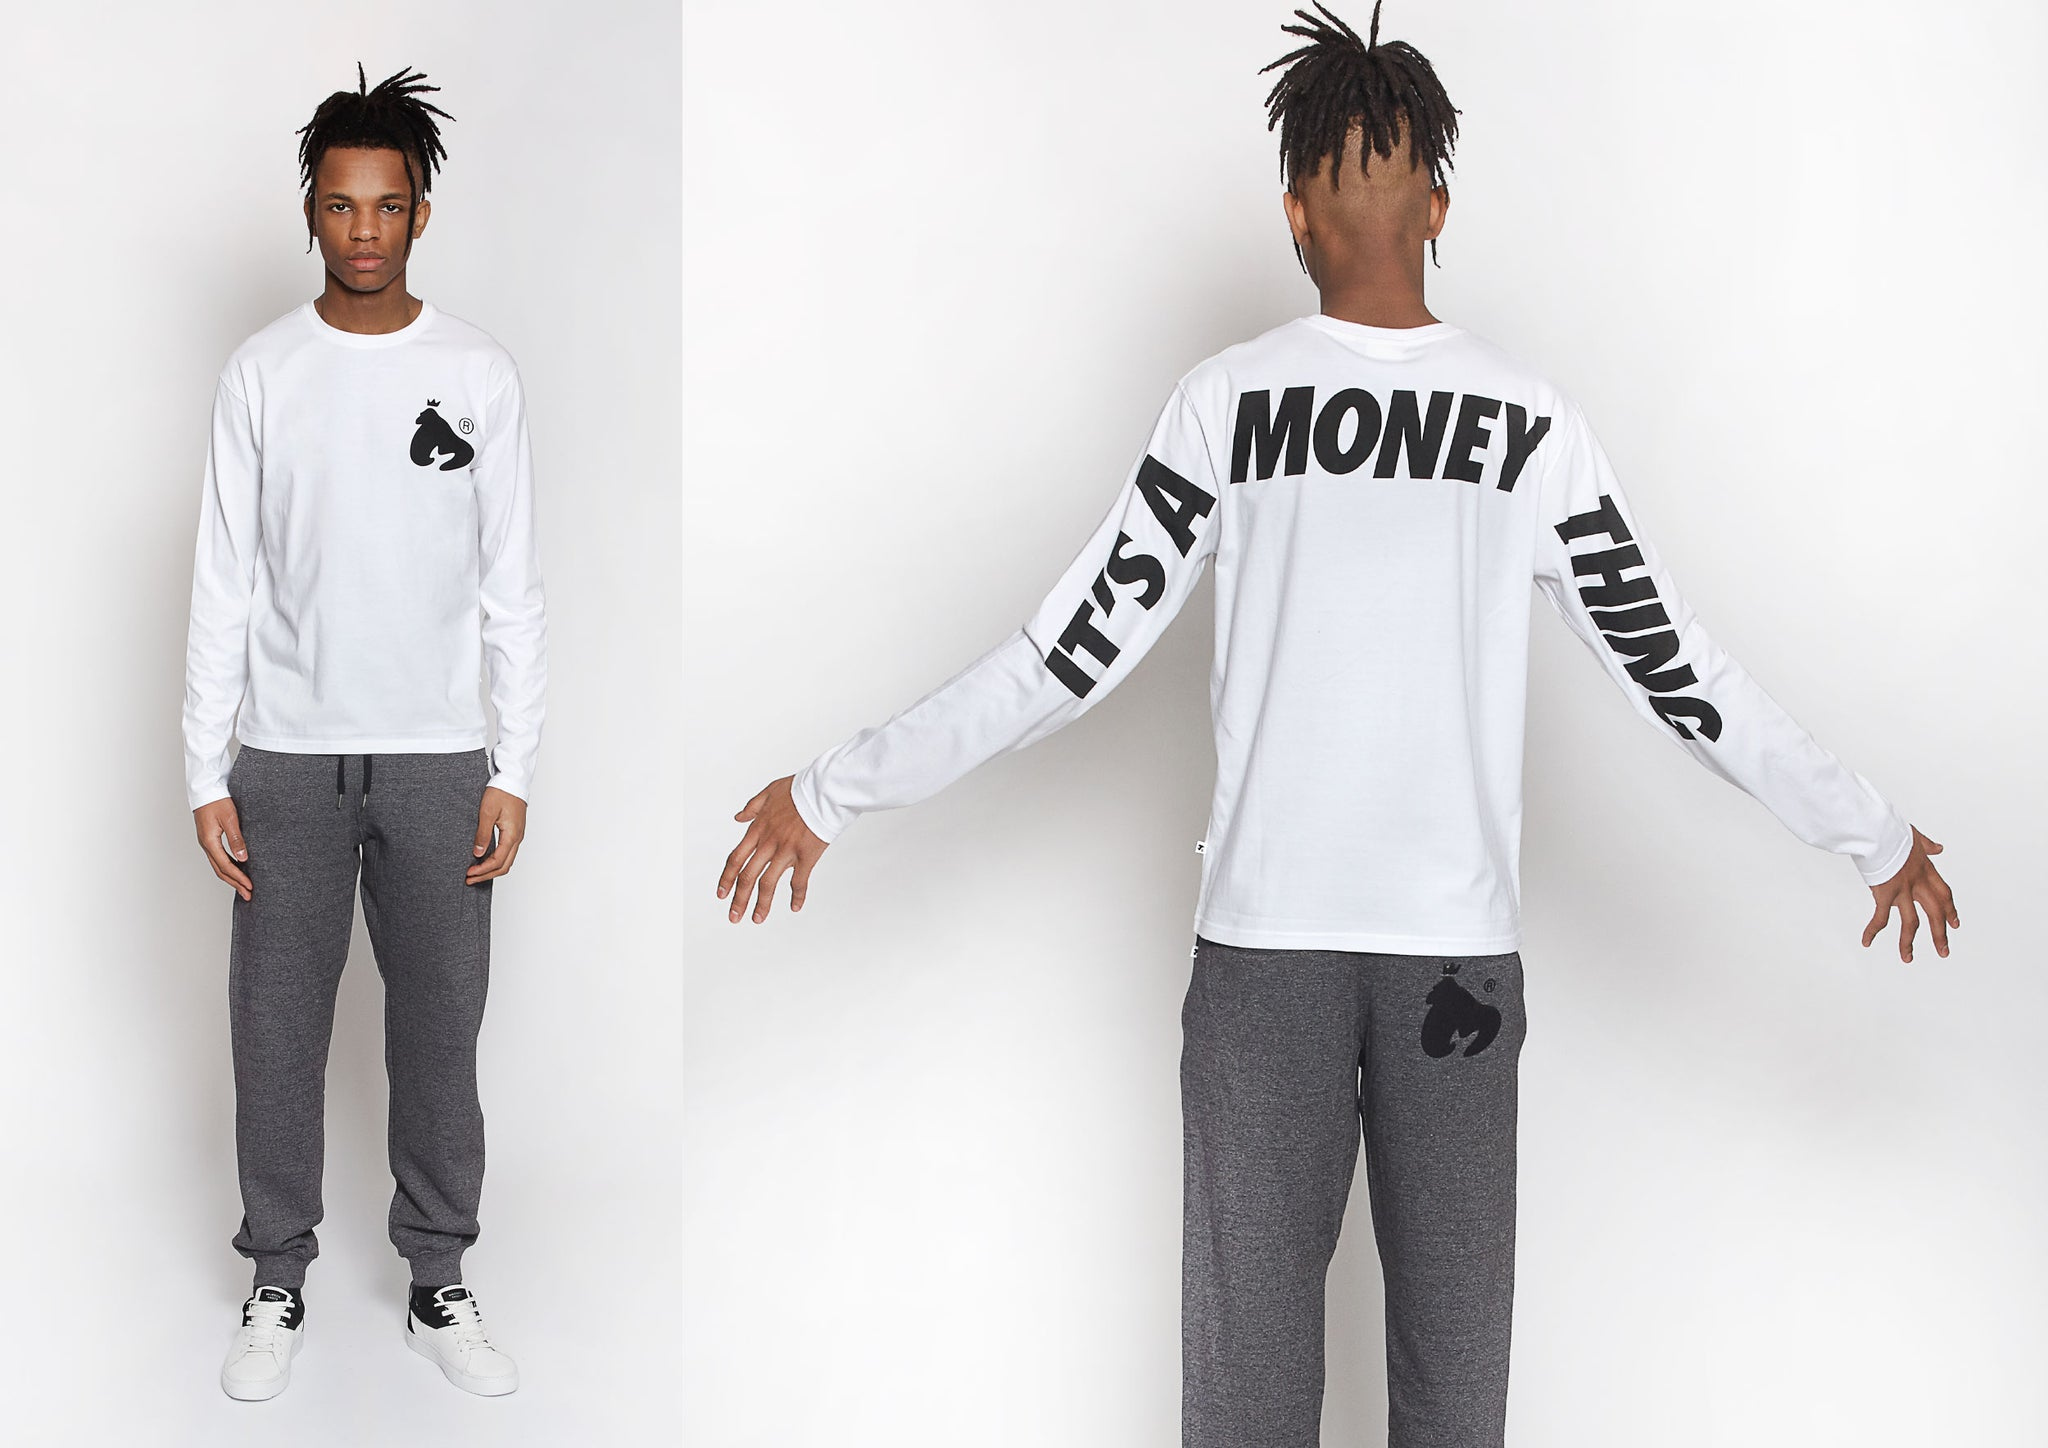 Money Clothing Autumn/Winter 2017